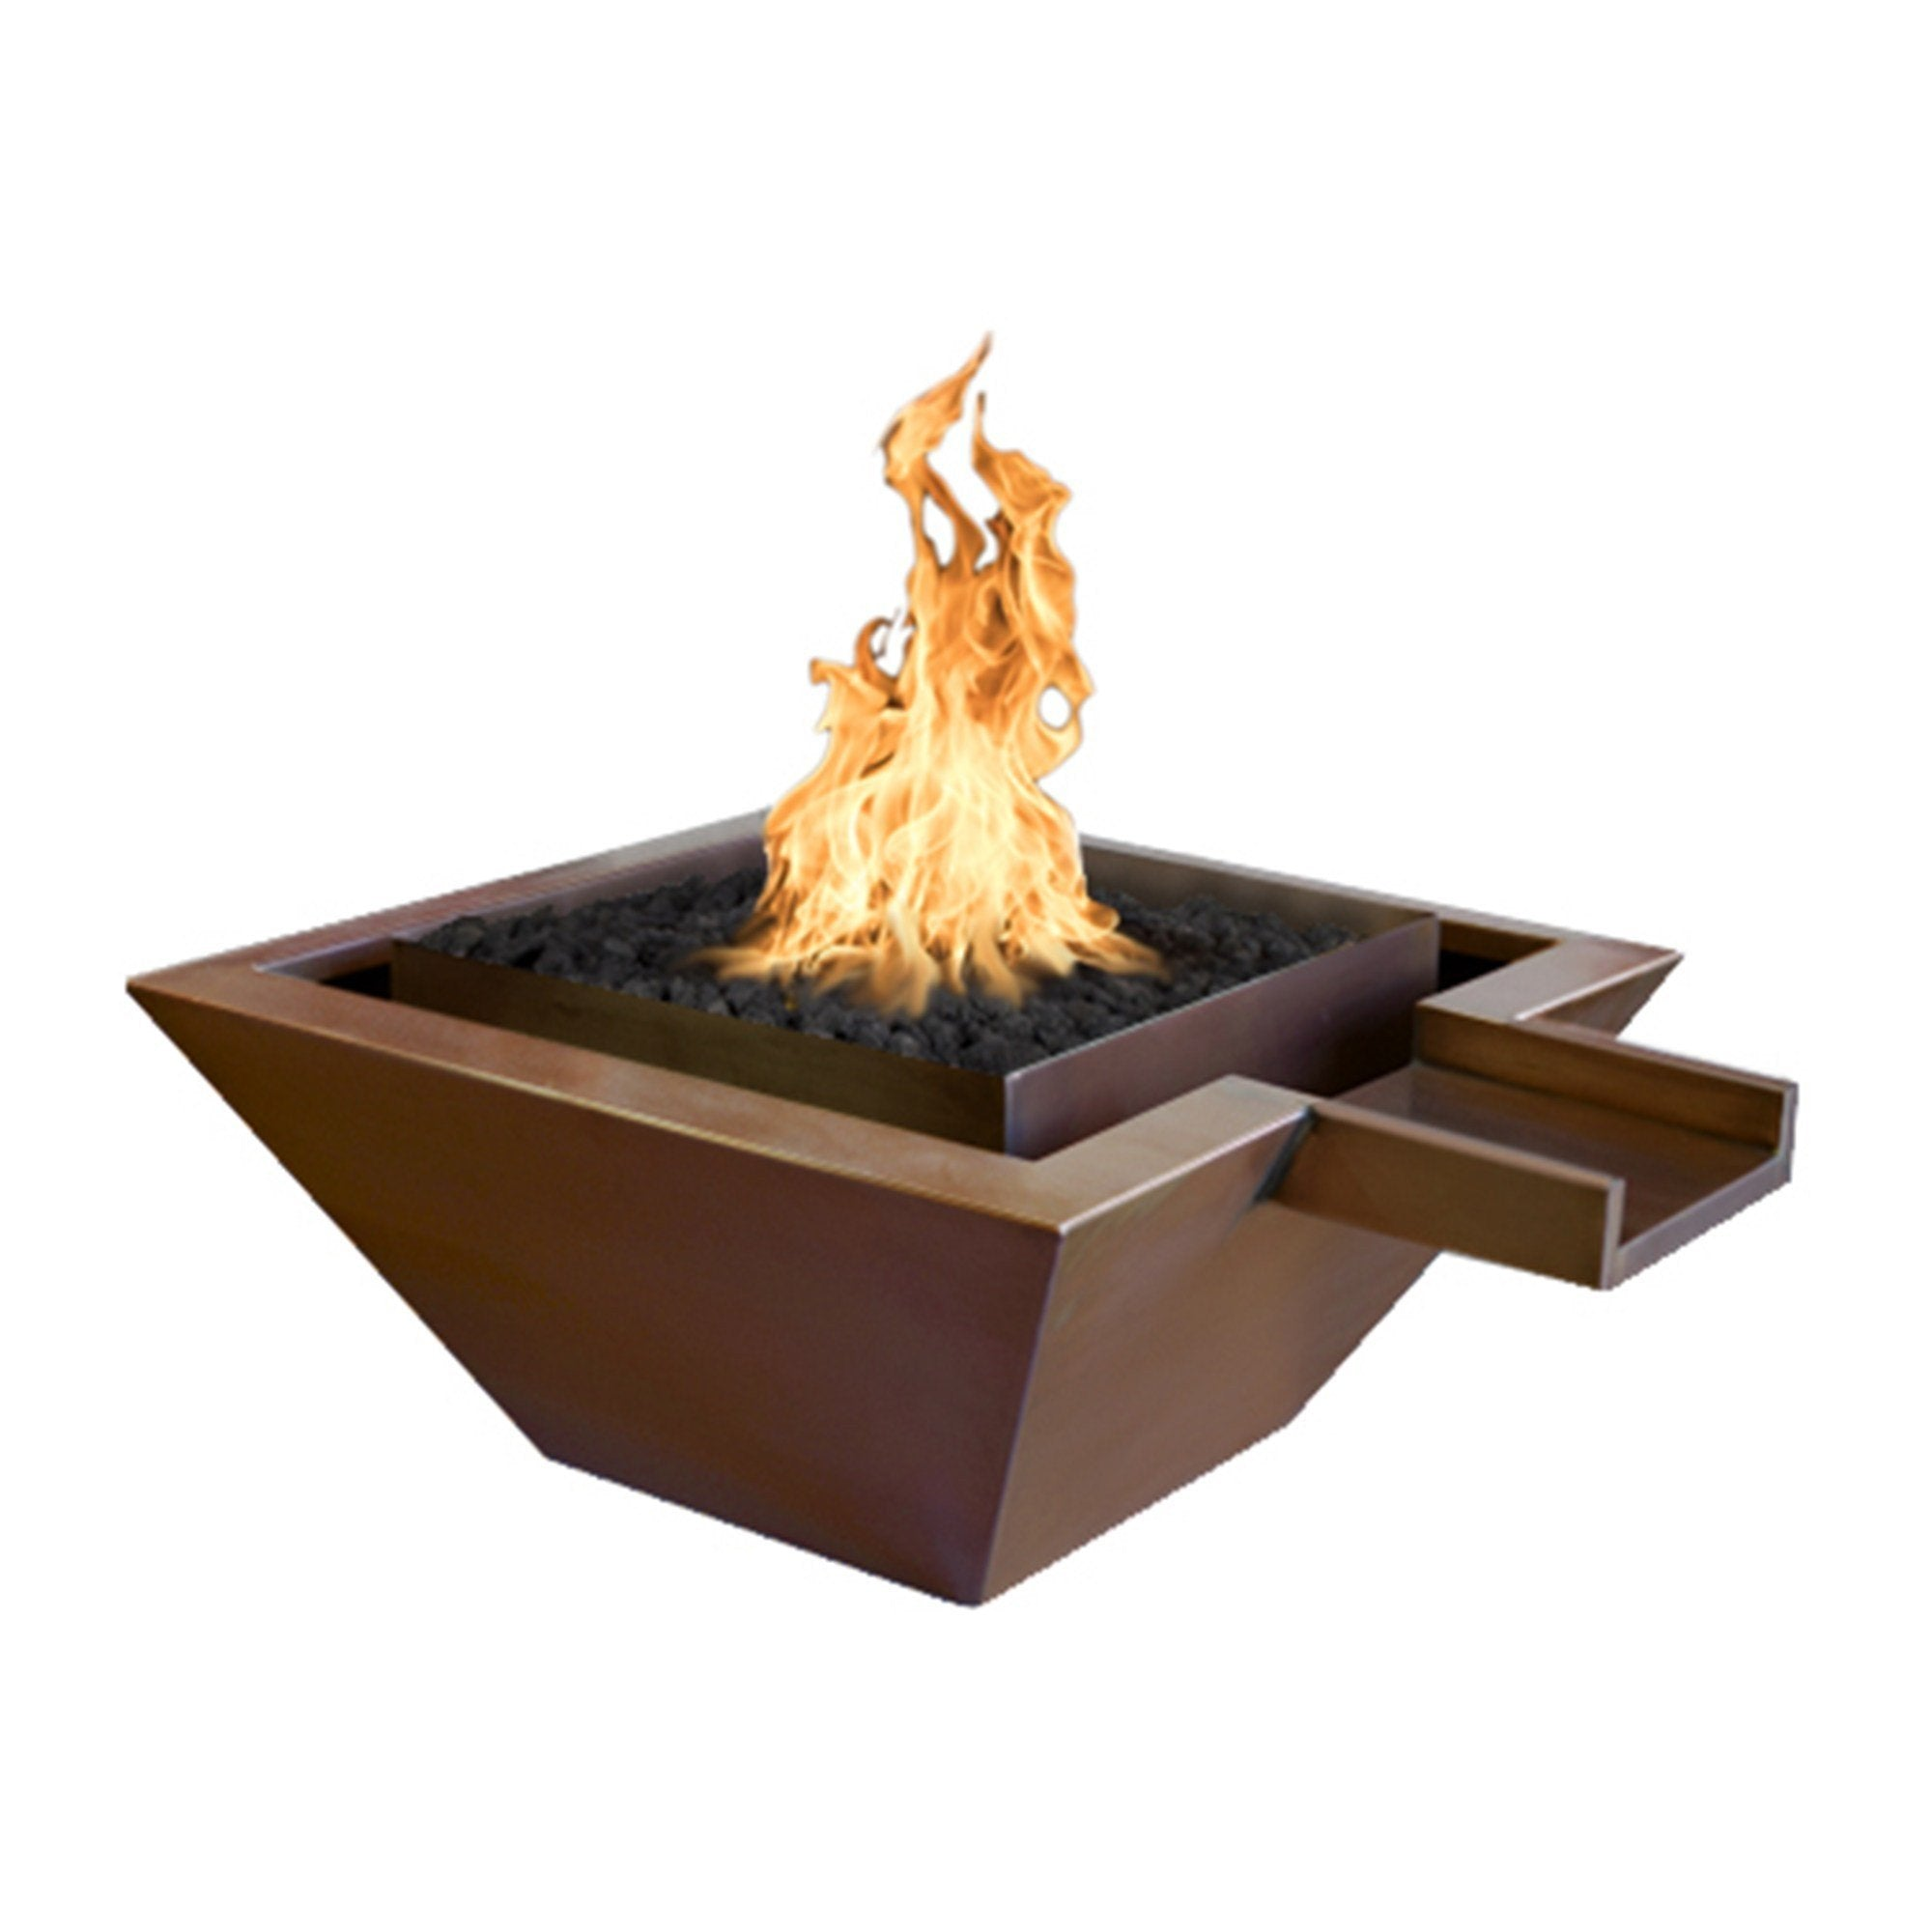 "TOP Fires by The Outdoor Plus Maya Hammered Patina Copper Gravity Spill Fire & Water Bowl 24"" - Fire Pit Oasis"